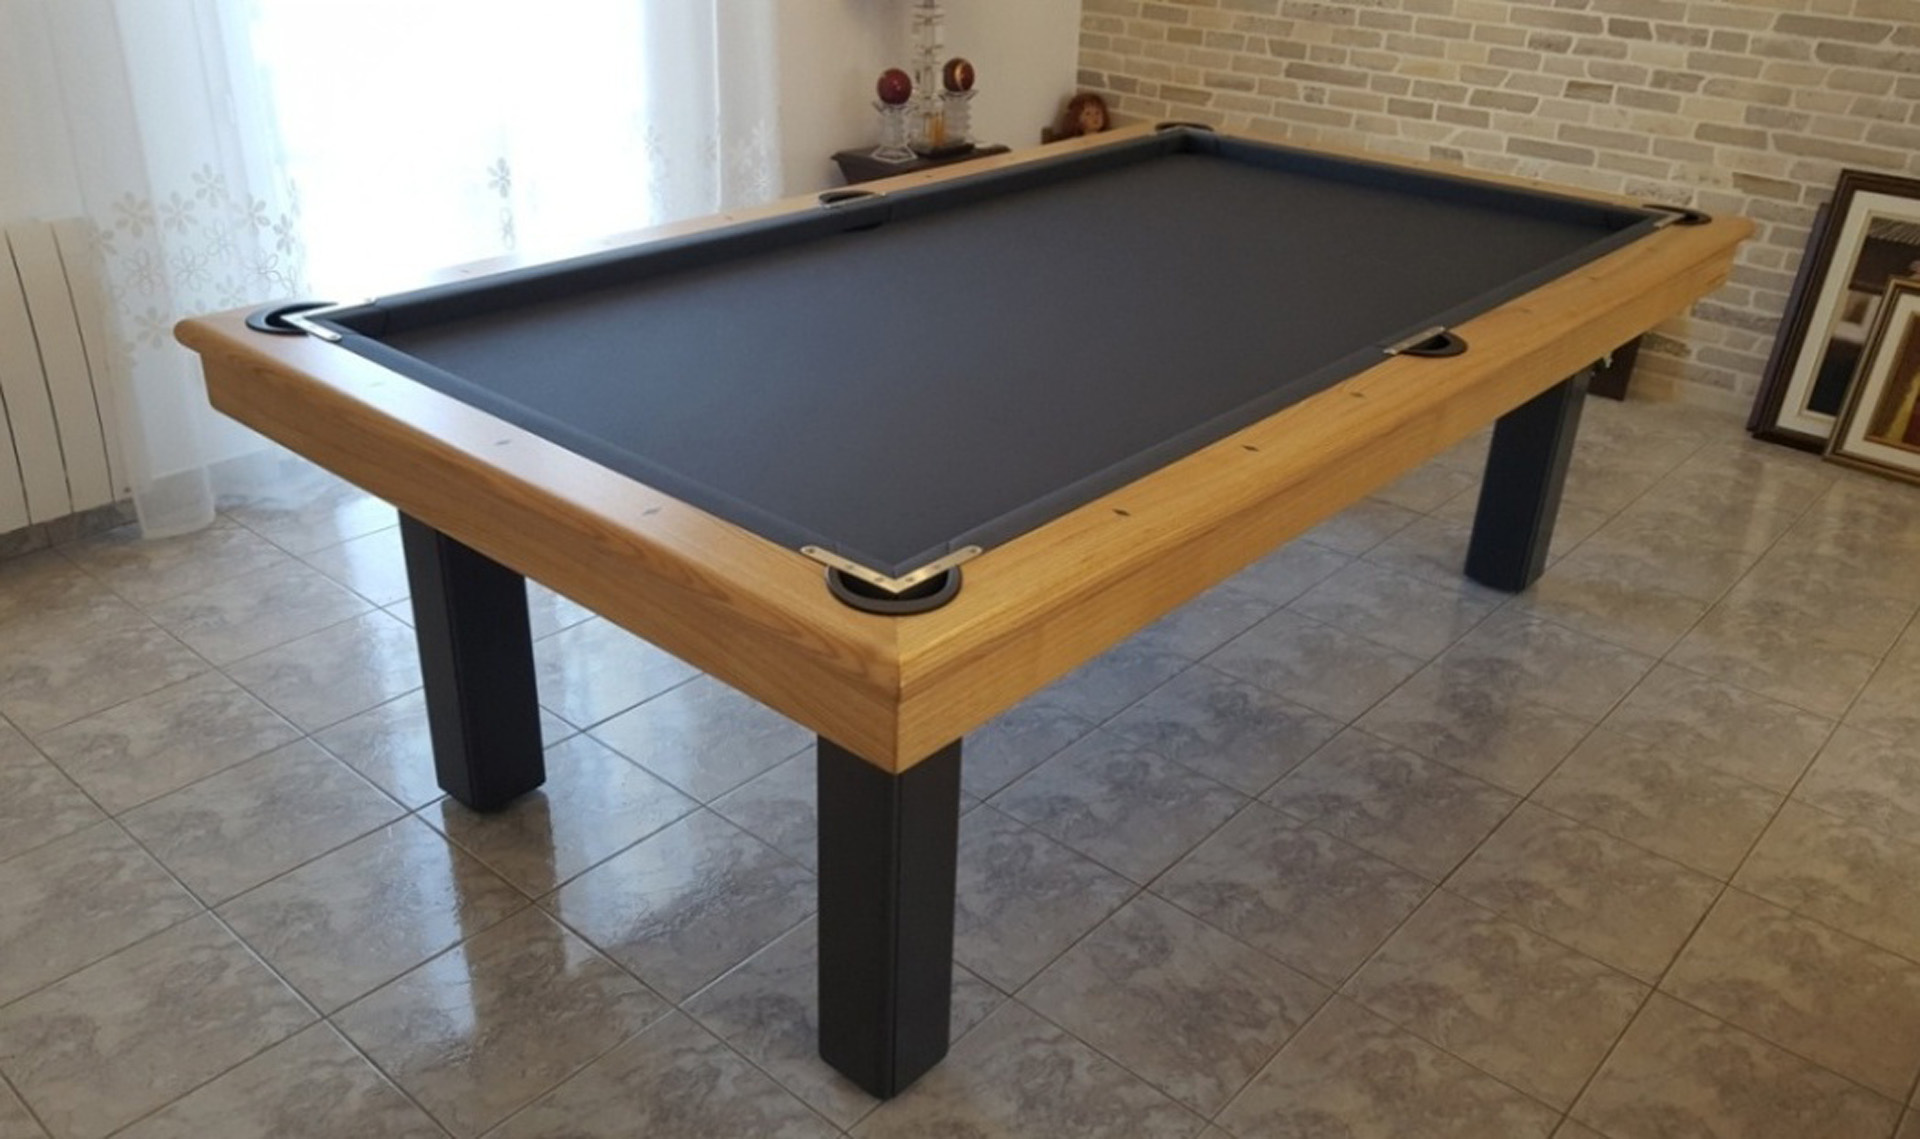 Table de billard Orion contemporain de Billards Bréton équipée de plugs pour un jeu mixte